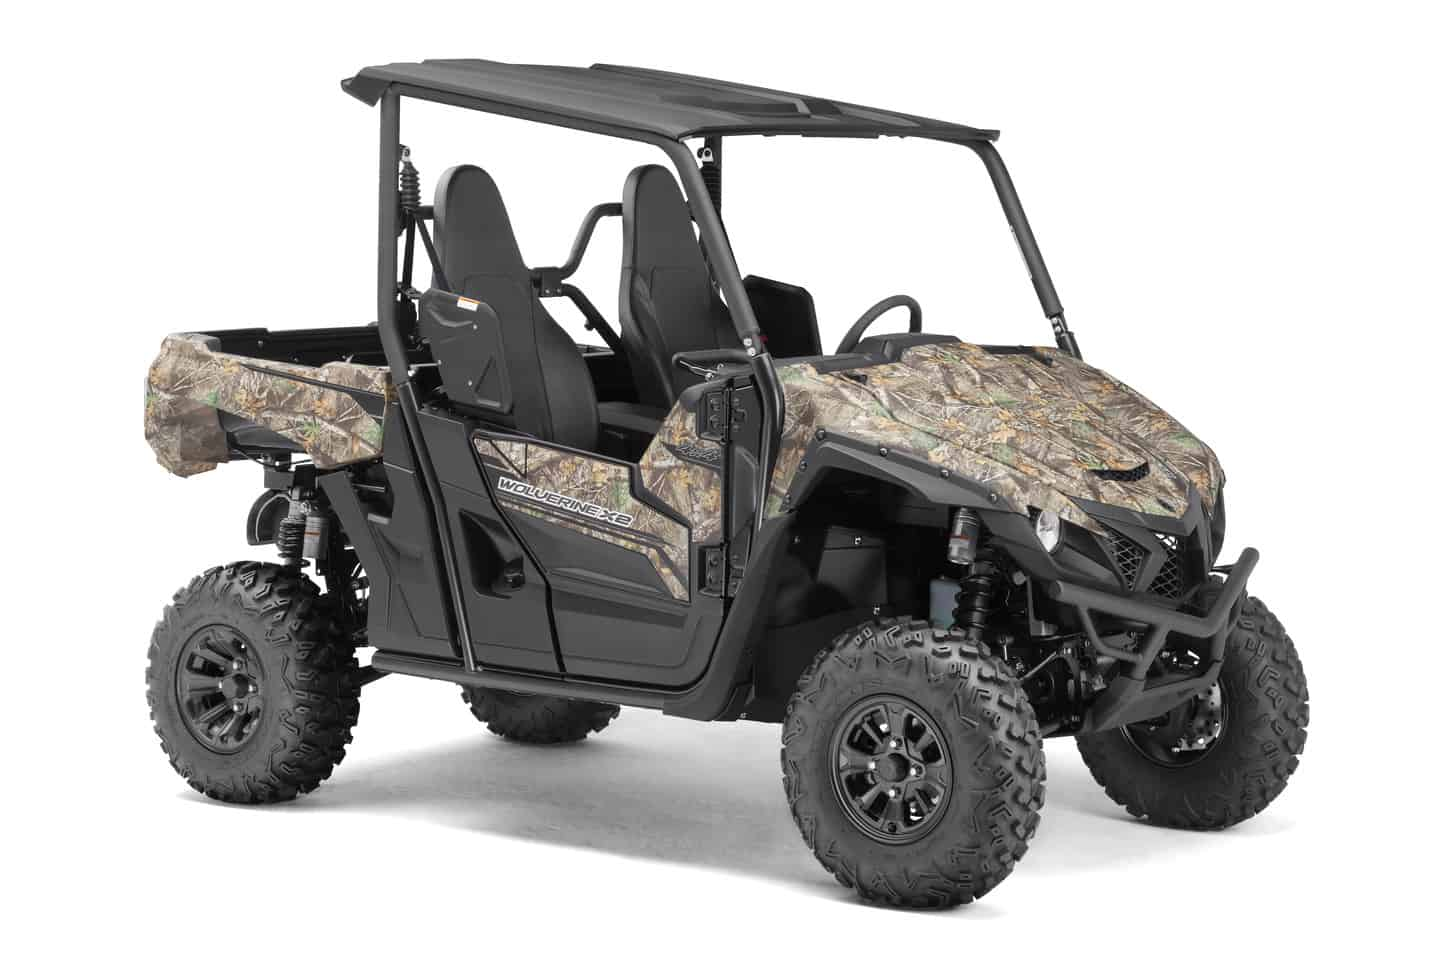 Yamaha releases all new 2019 wolverine x2 utv sports for Top speed of yamaha wolverine side by side